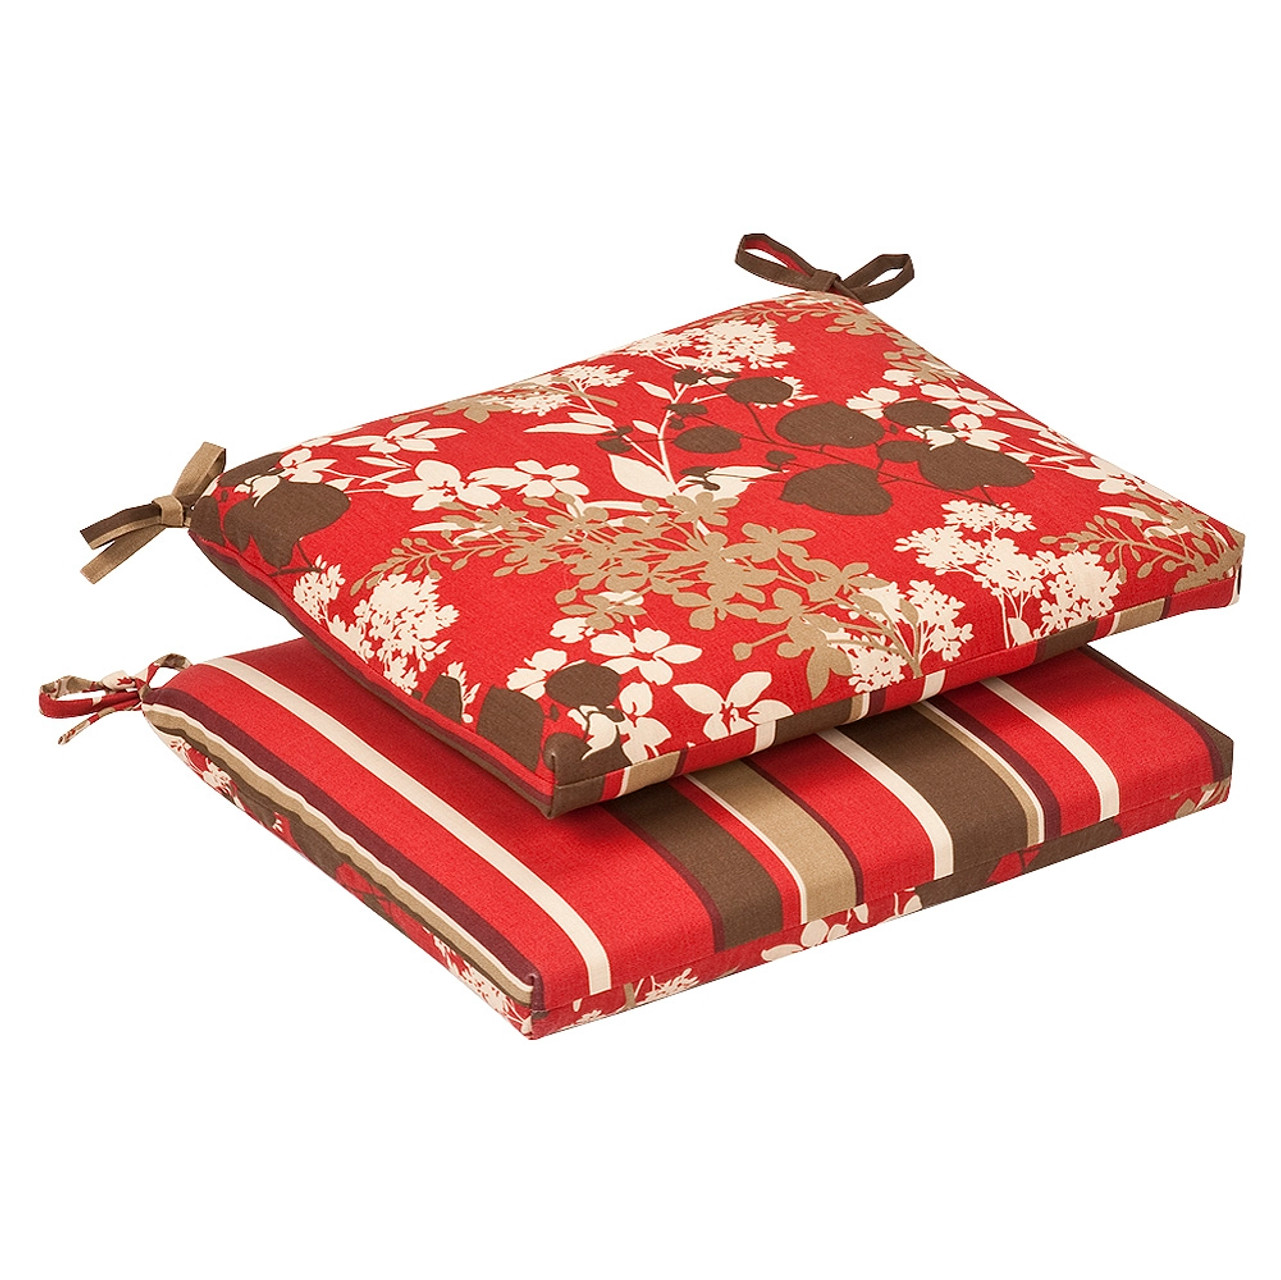 Pillow Perfect Montifleuri Monserrat Reversible Squared Corners Seat Cushion Set Of 2 Trees N Trends Home Fashion More